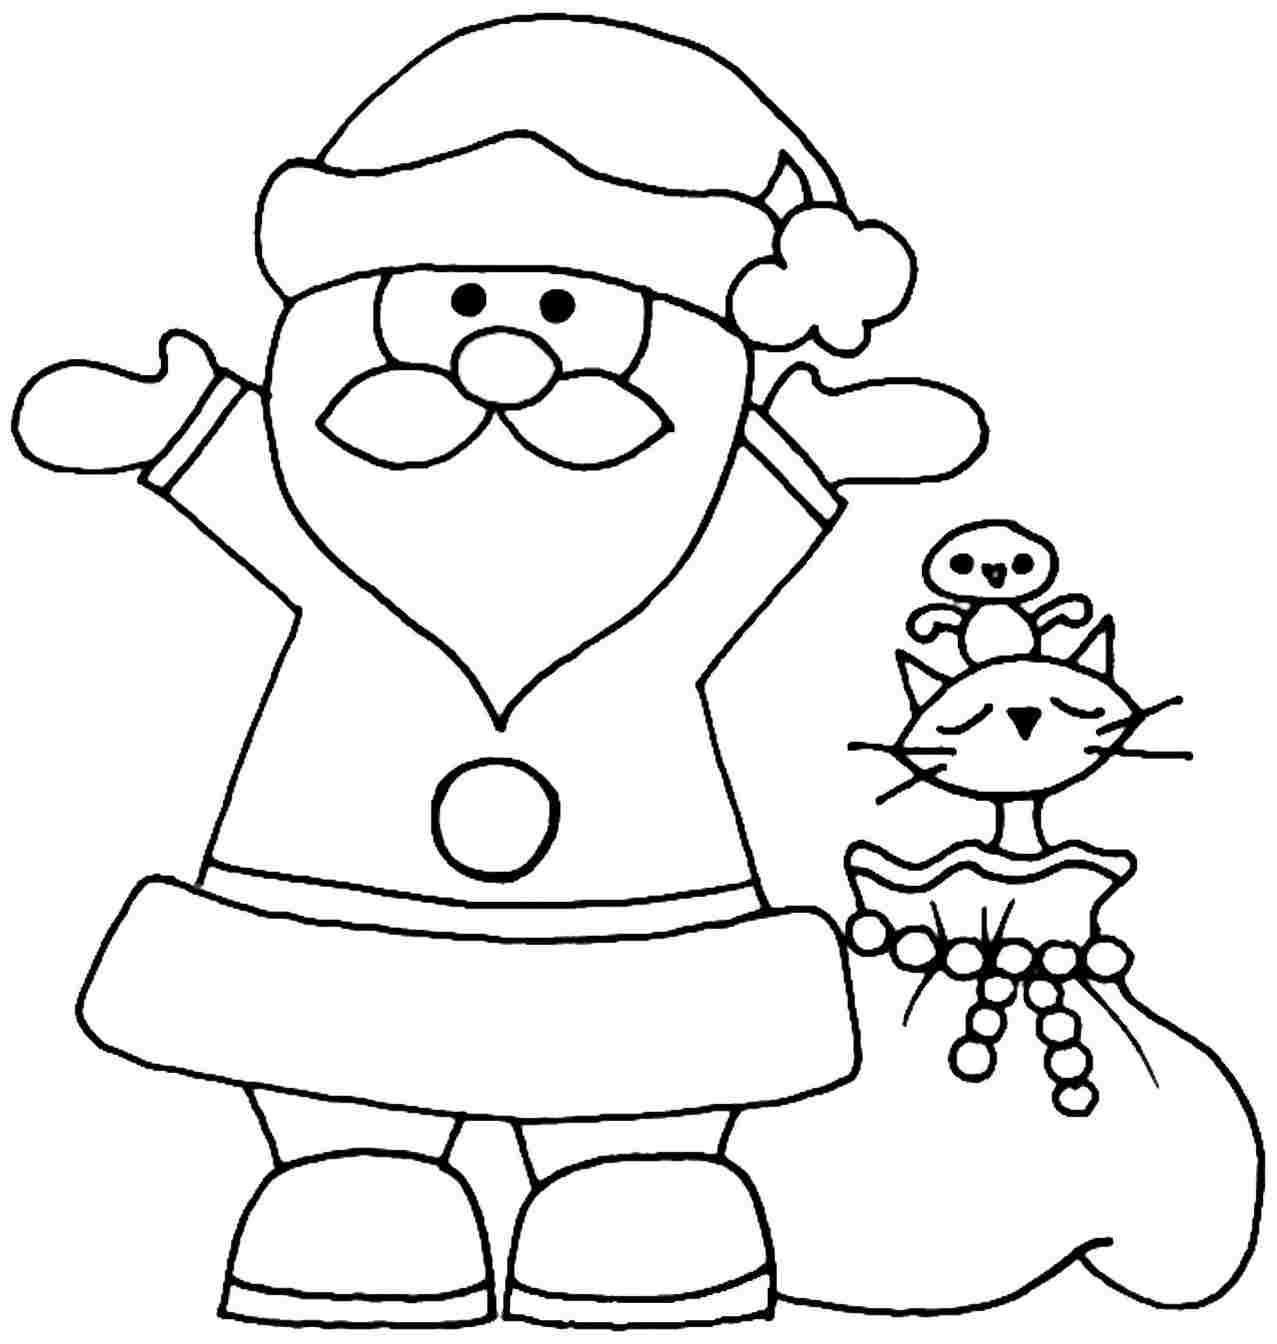 Christmas coloring pages for kindergarten | ststephenuab.com ...